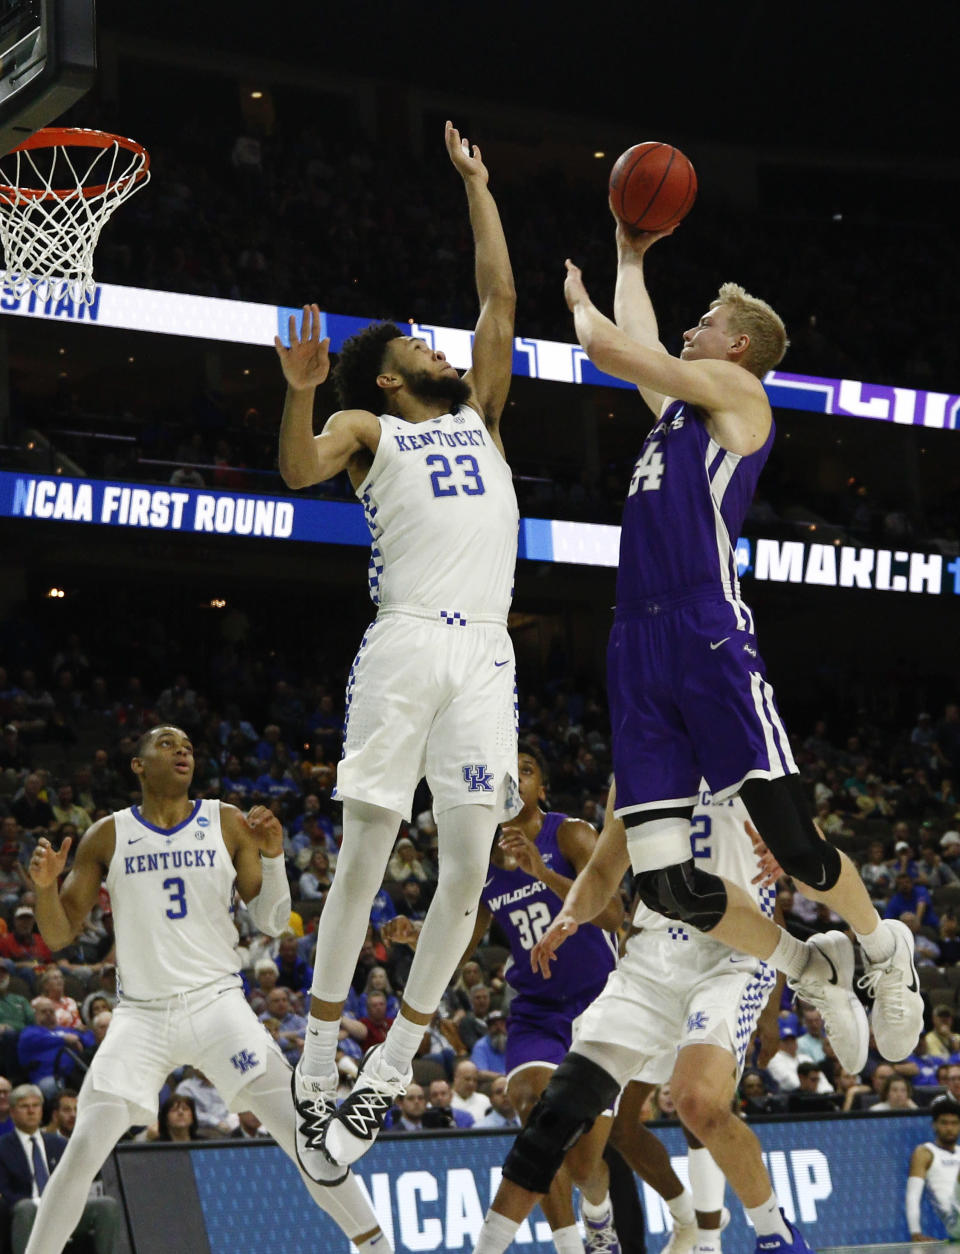 Abilene Christian's Kolton Kohl, right, goes up for a shot against Kentucky's EJ Montgomery (23) during the first half of a first-round game in the NCAA mens college basketball tournament in Jacksonville, Fla. Thursday, March 21, 2019. (AP Photo/Stephen B. Morton)